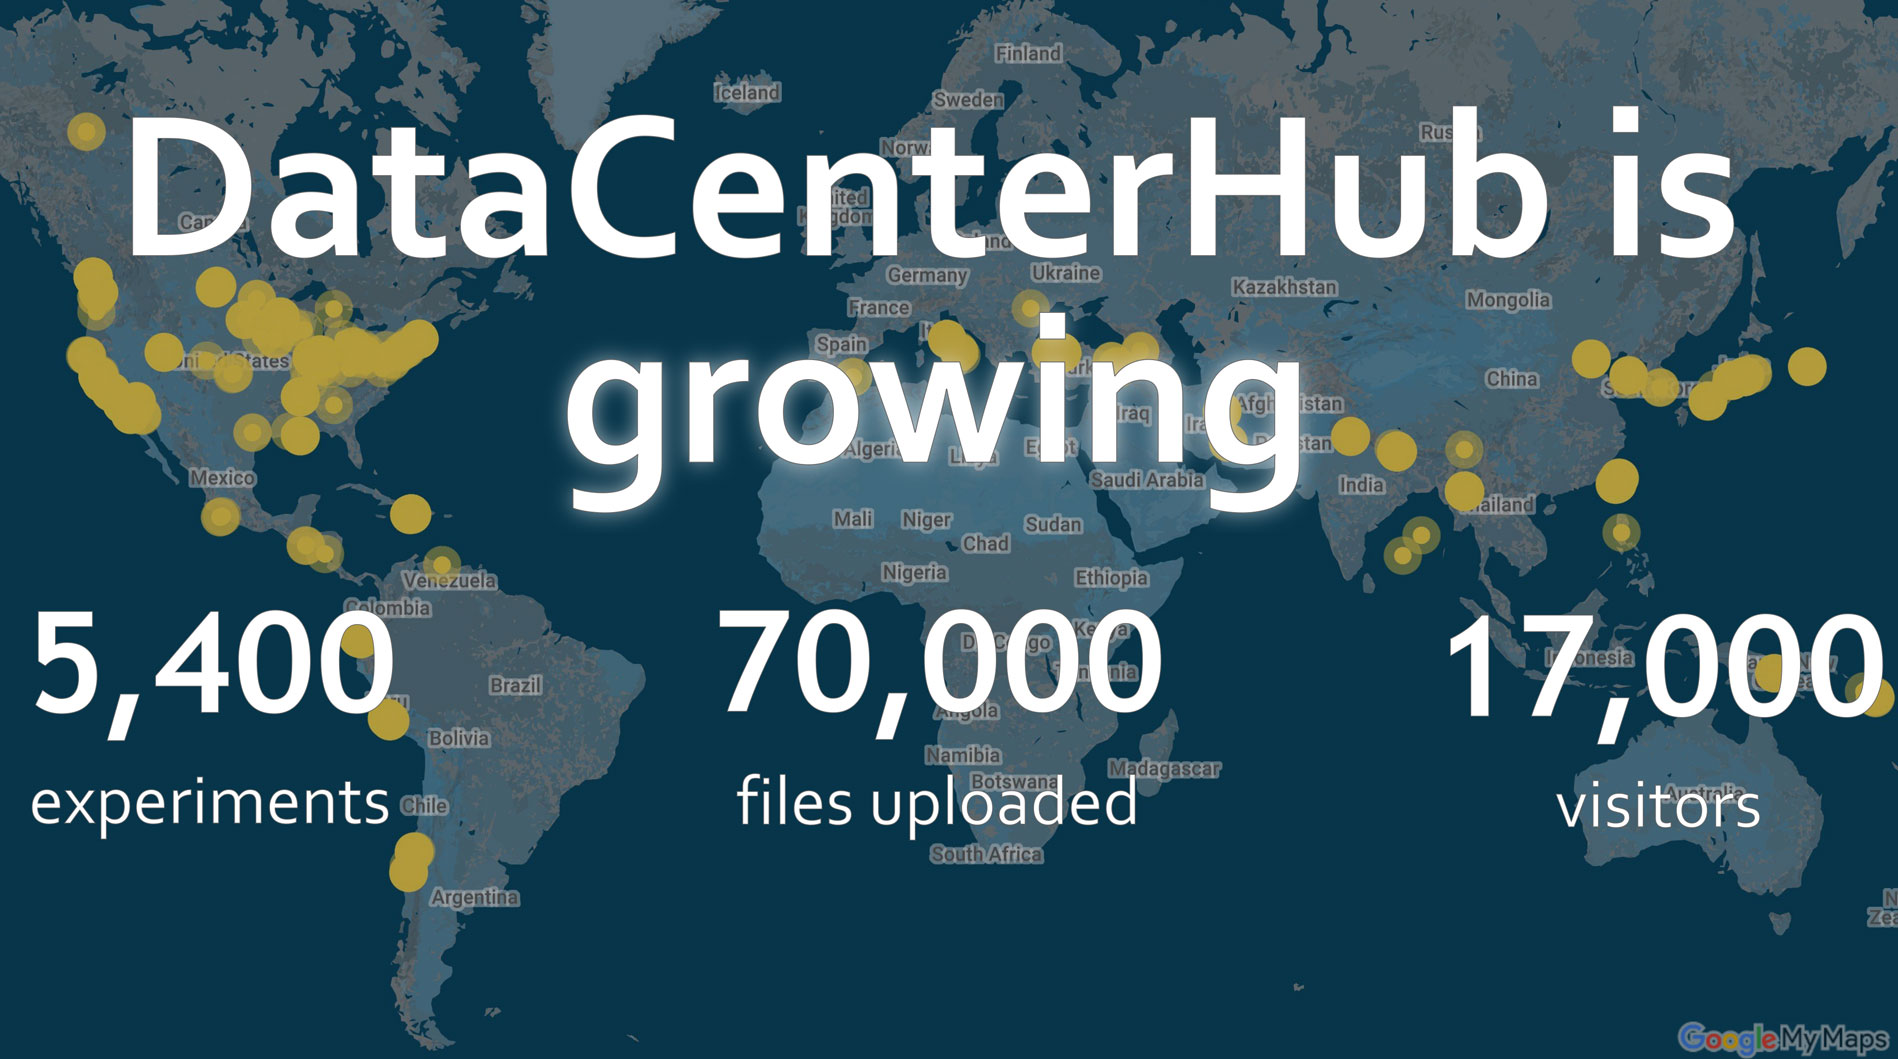 DataCenterHub currently hosts over 30 TB of data, encompassing over 5,400 experiments